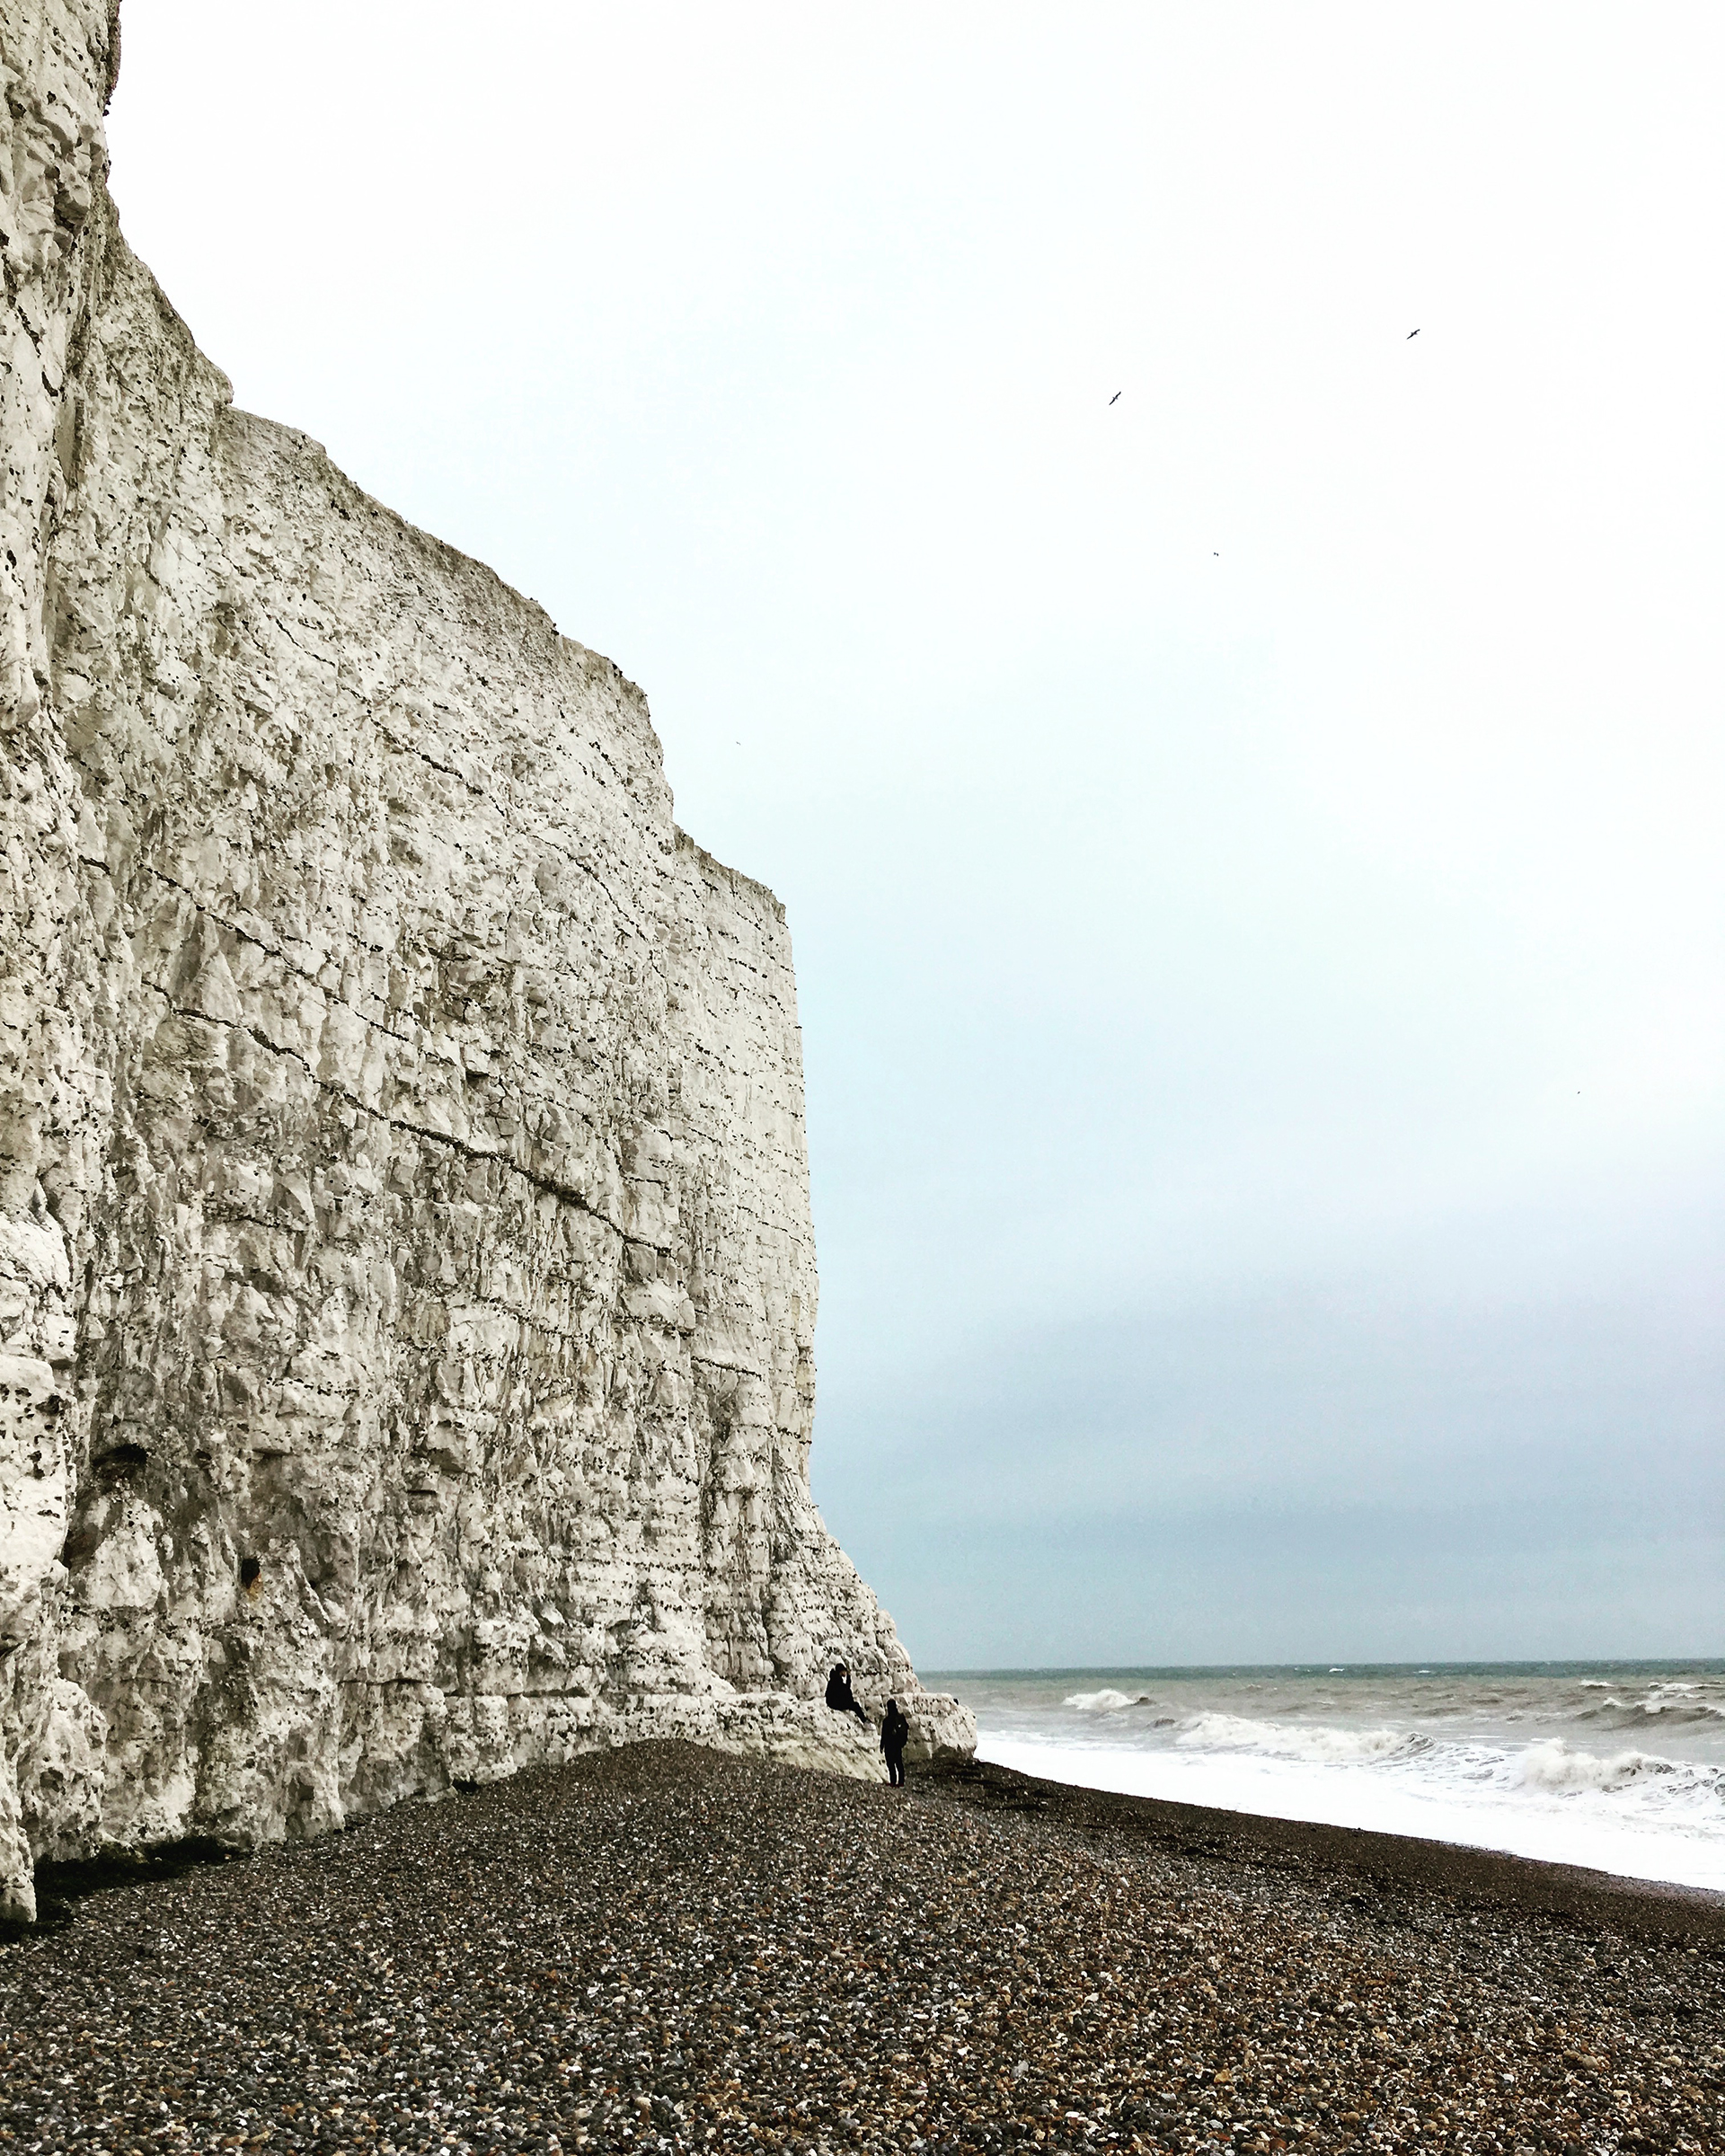 The cliffs and beach at Seven Sisters in Sussex.